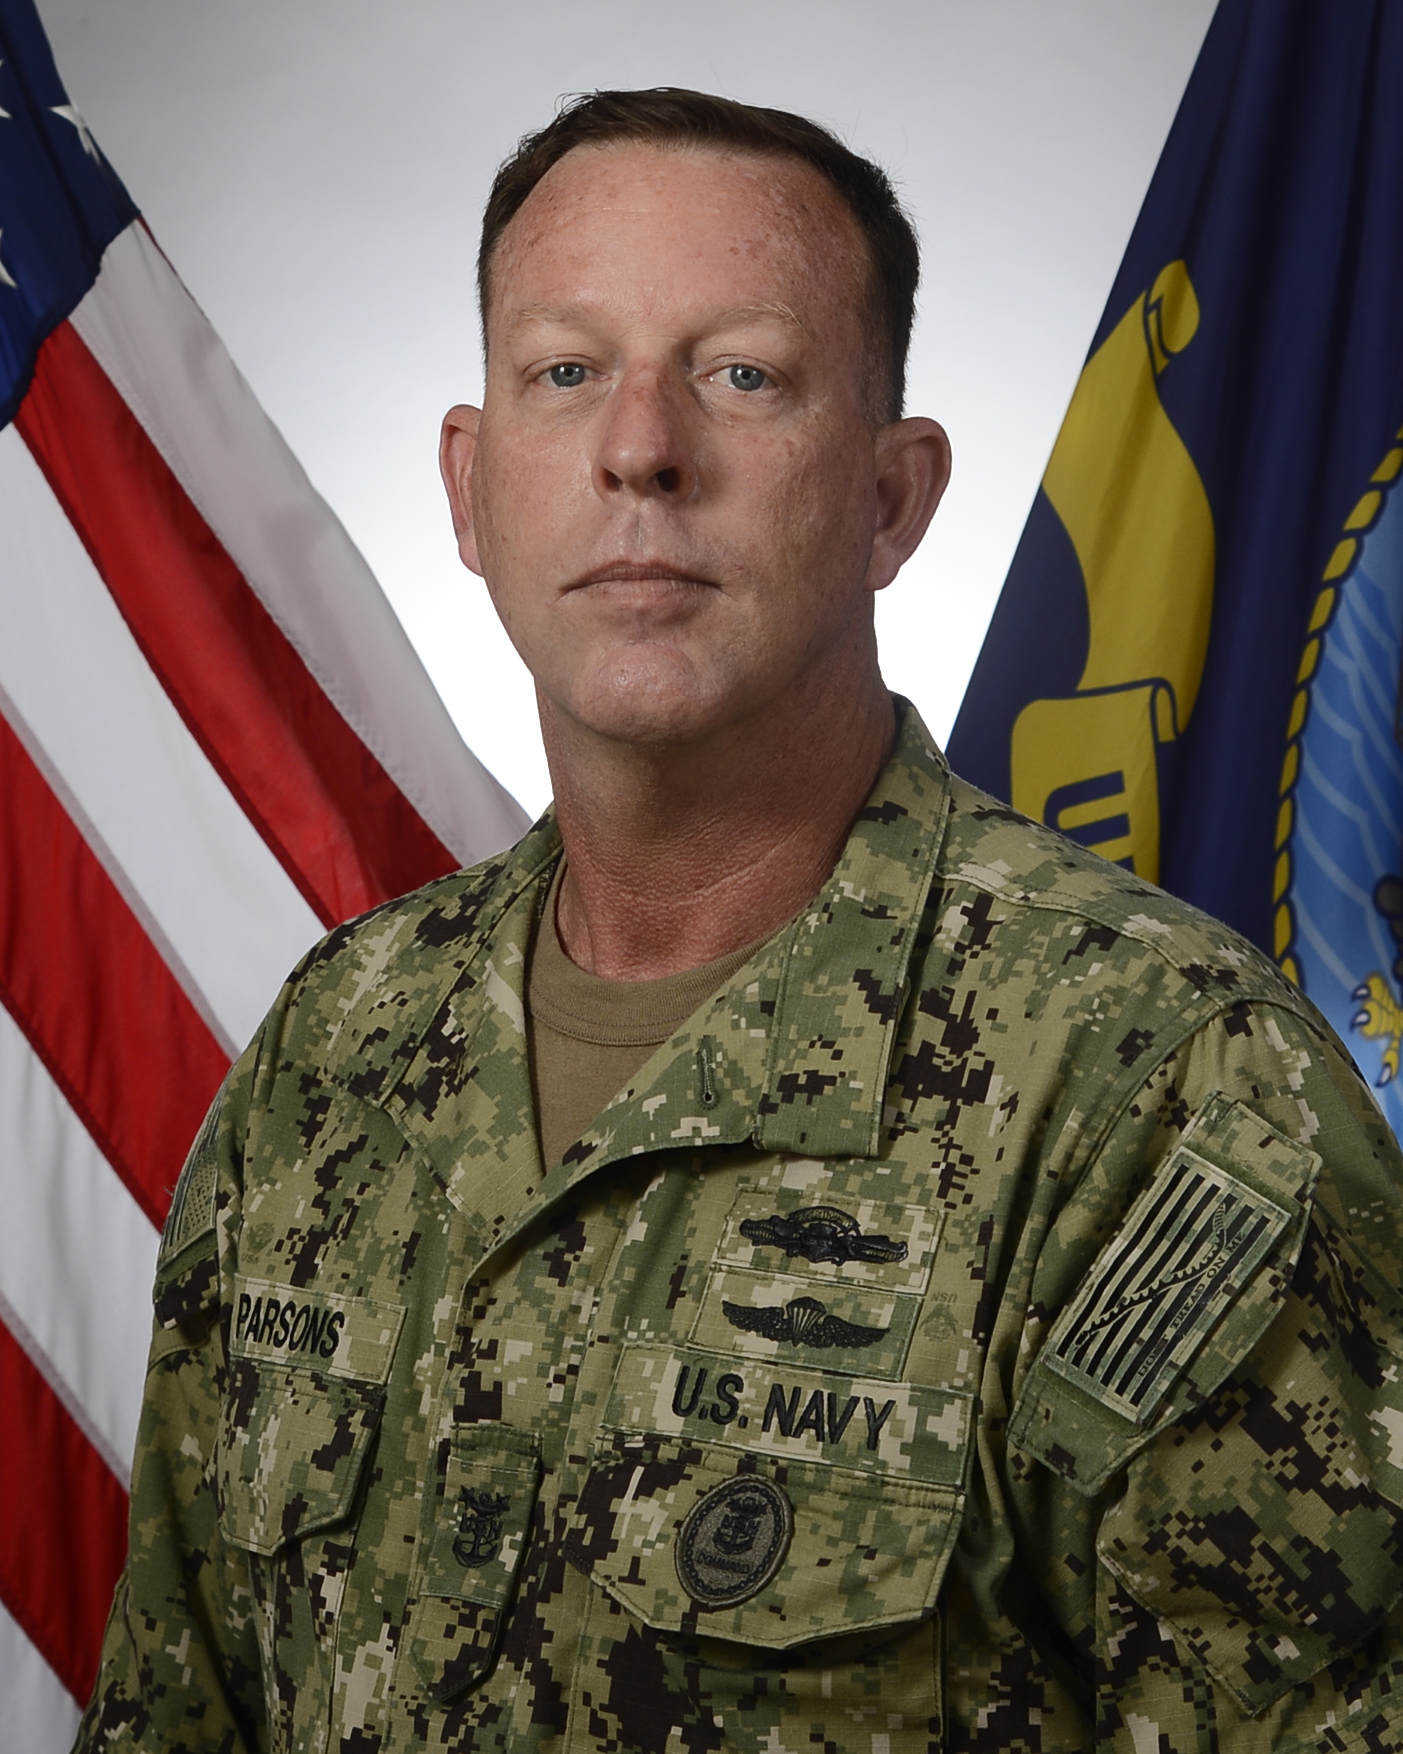 CJTF-HOA Command Senior Enlisted Leader Biography